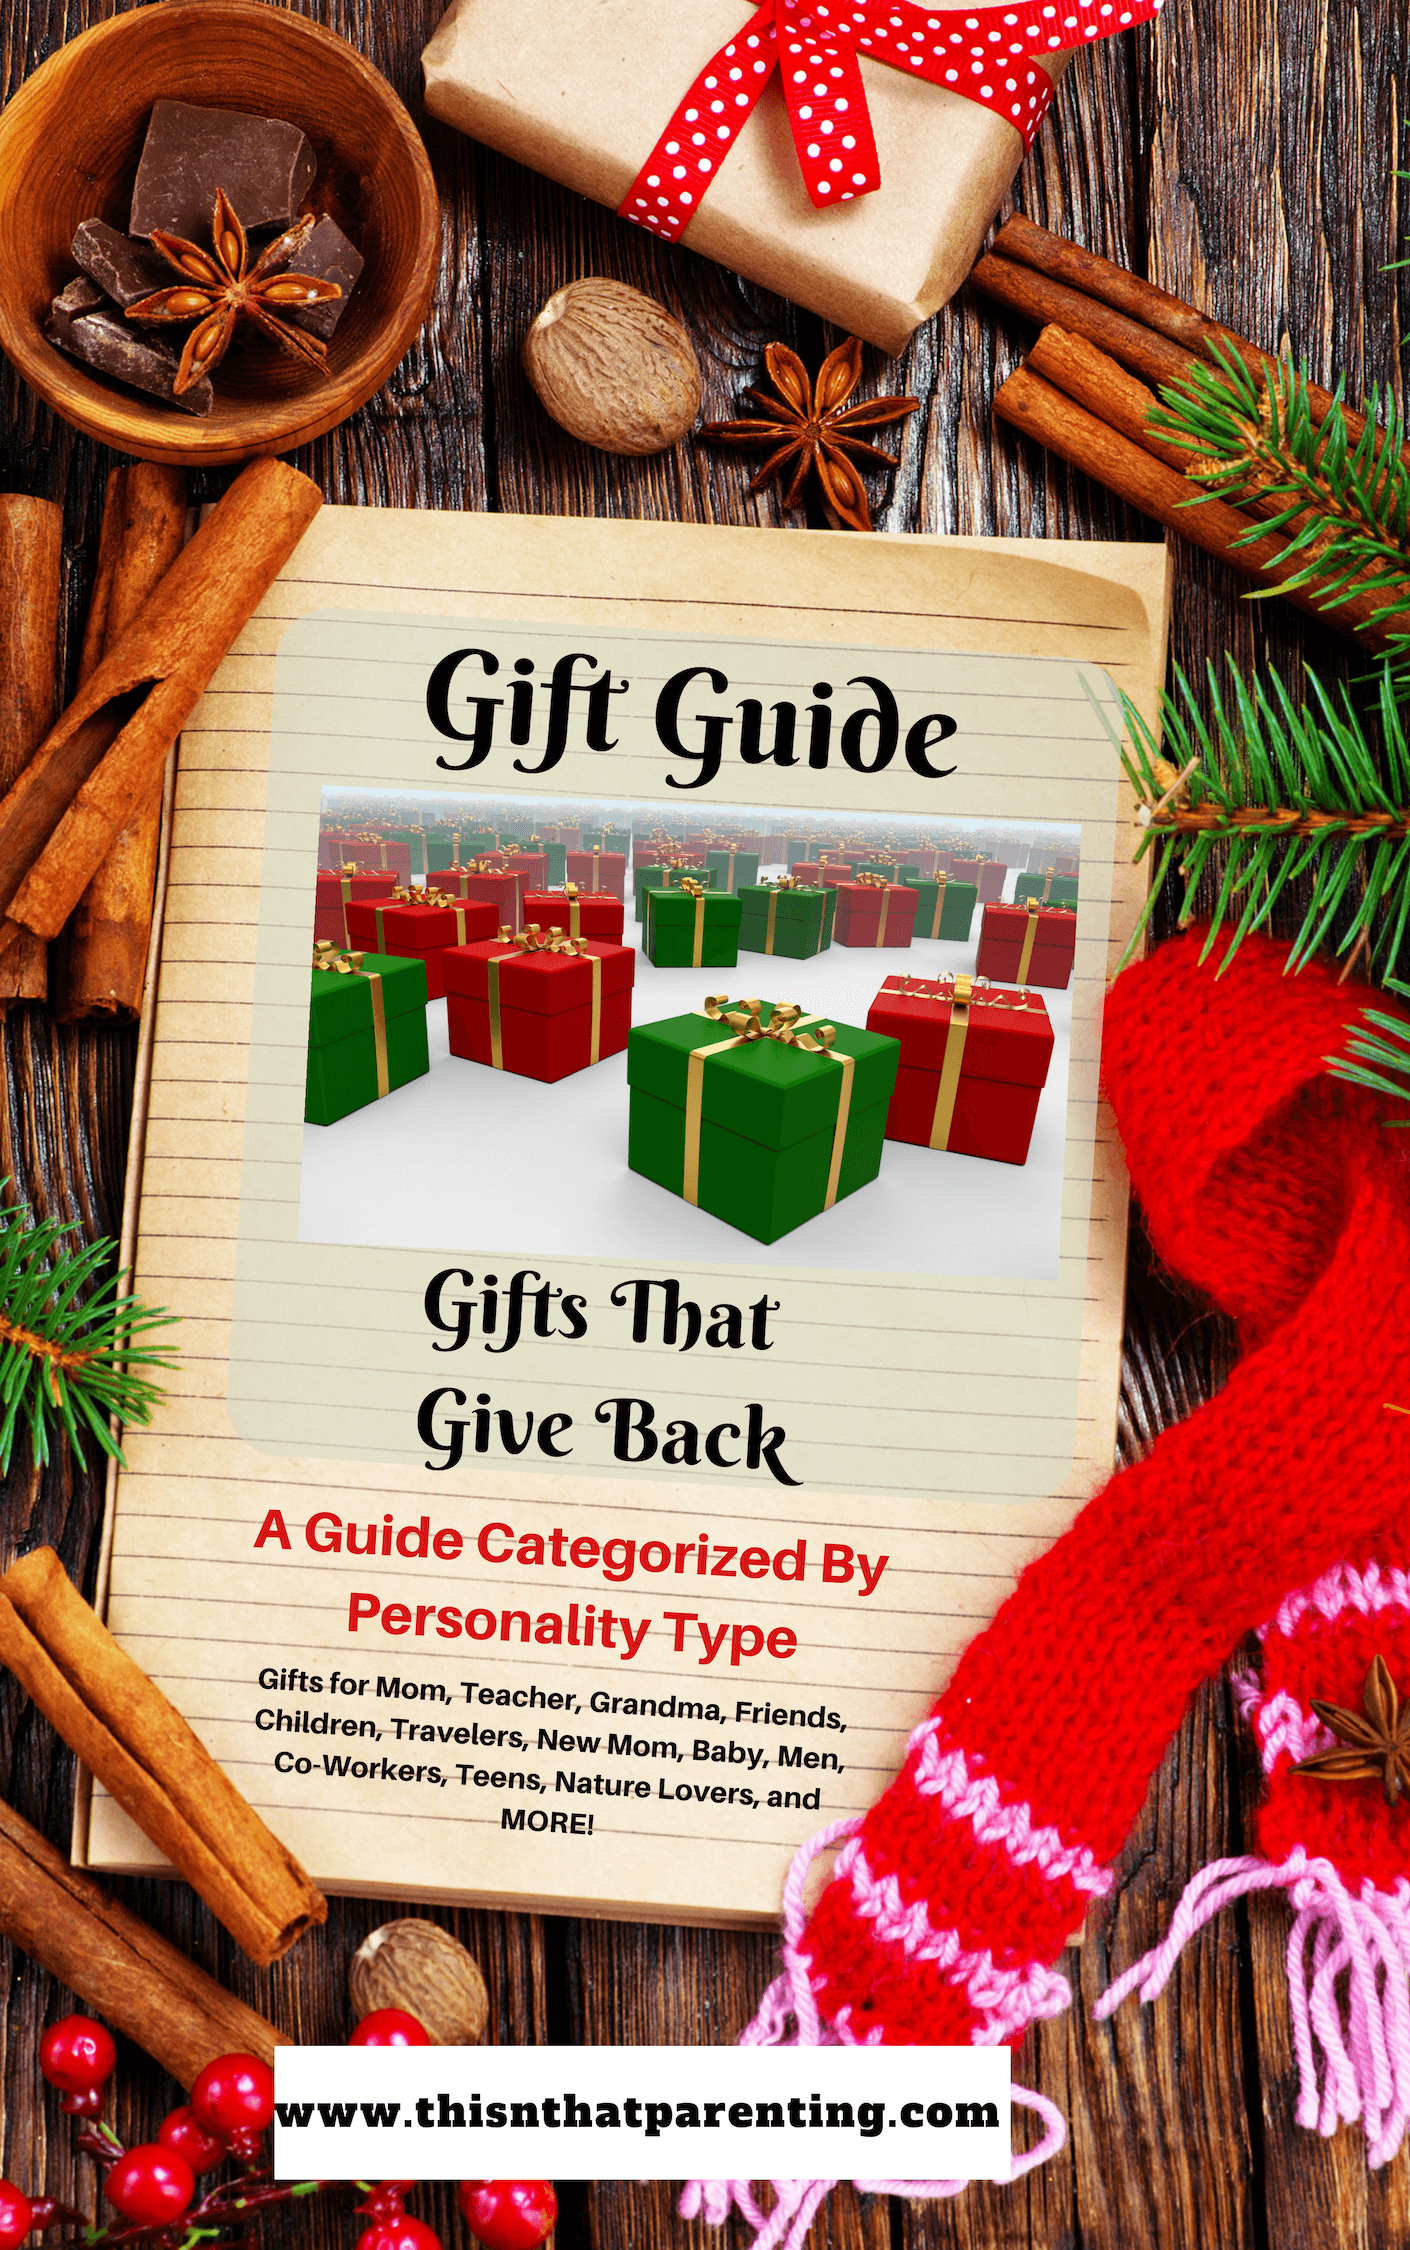 People in developing countries will benefit from the gifts in this guide. Gifts categorized by personality type Free coupon book and gift tags included! This guide contains all of the things & it includes everyone on the list. The gifts are divided into personalized categories. The guide includes a Free Printable PDF Coupon Book for kids and Free Printable Gift Tags for all the gifts. All of your shopping can be done with this guide, so get out your list and go to work! #couponbook #giftideas #gifttags #giftsforcoworkers #giftsforfriends #giftforteens #giftsformom #giftsfordad #teachergifts #giftguide #giftsthatgiveback